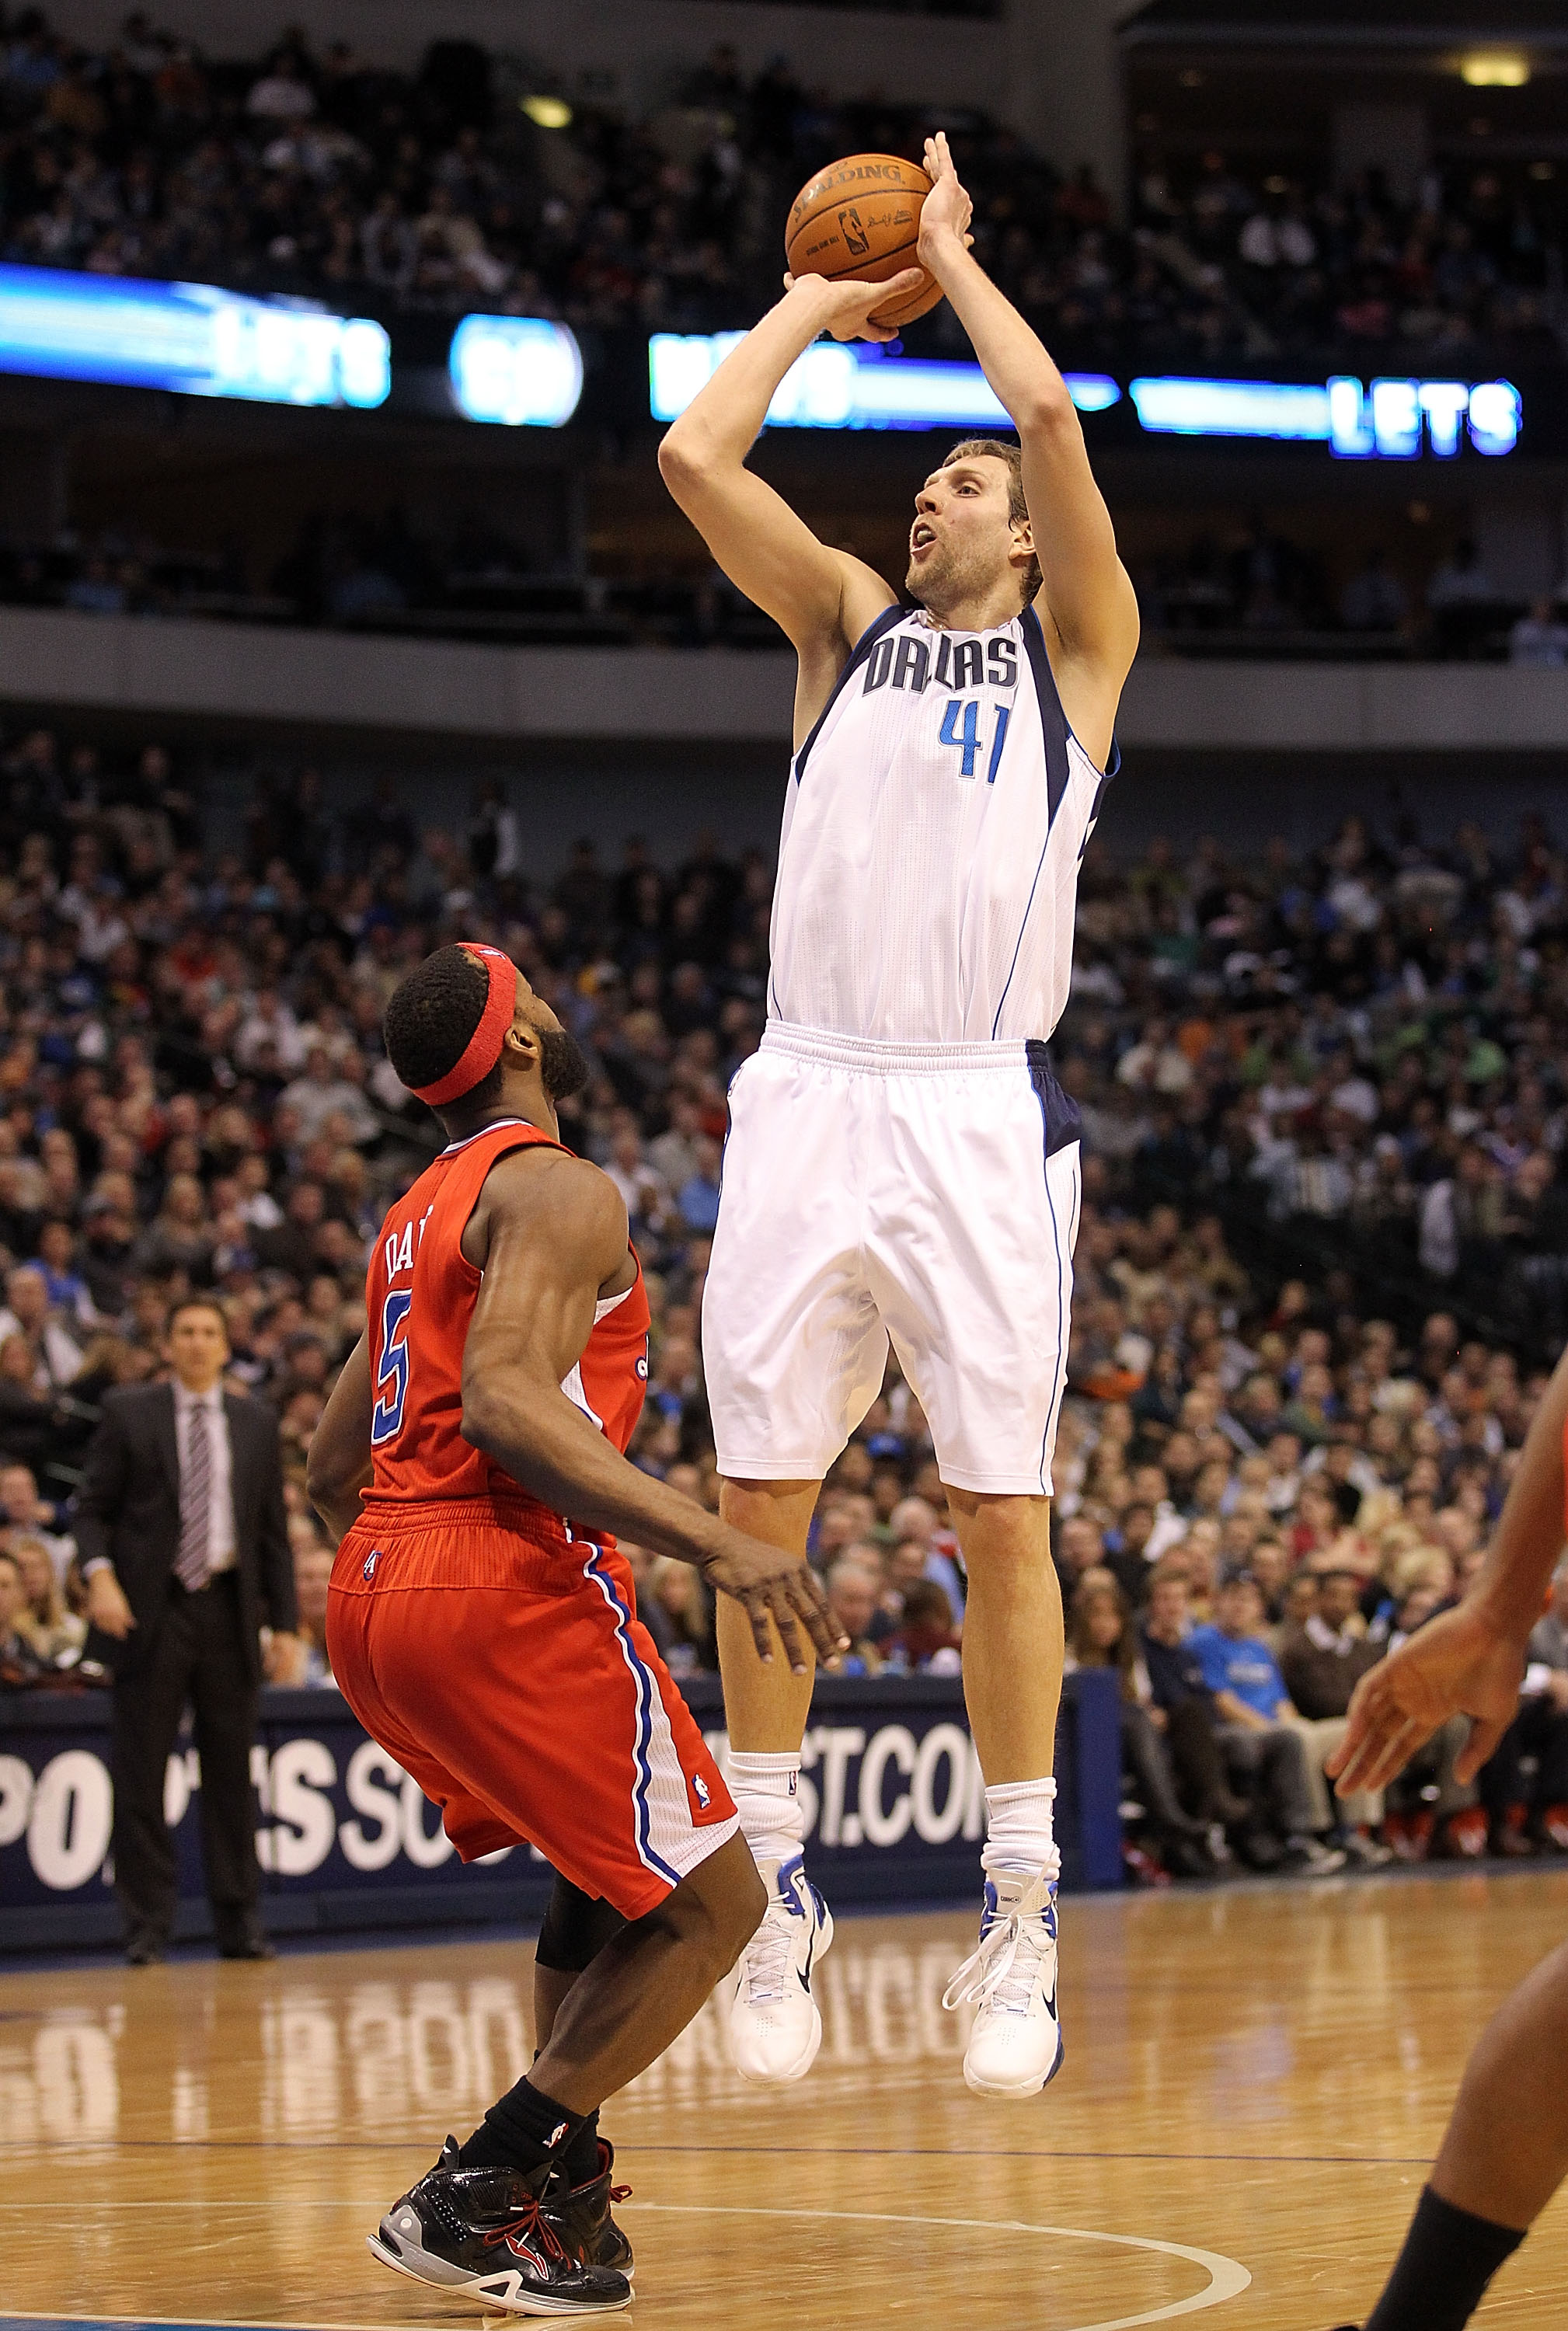 DALLAS, TX - JANUARY 25:  Guard Dirk Nowitzki #41 of the Dallas Mavericks takes a shot against Baron Davis #5 of the Los Angeles Clippers at American Airlines Center on January 25, 2011 in Dallas, Texas.  NOTE TO USER: User expressly acknowledges and agre